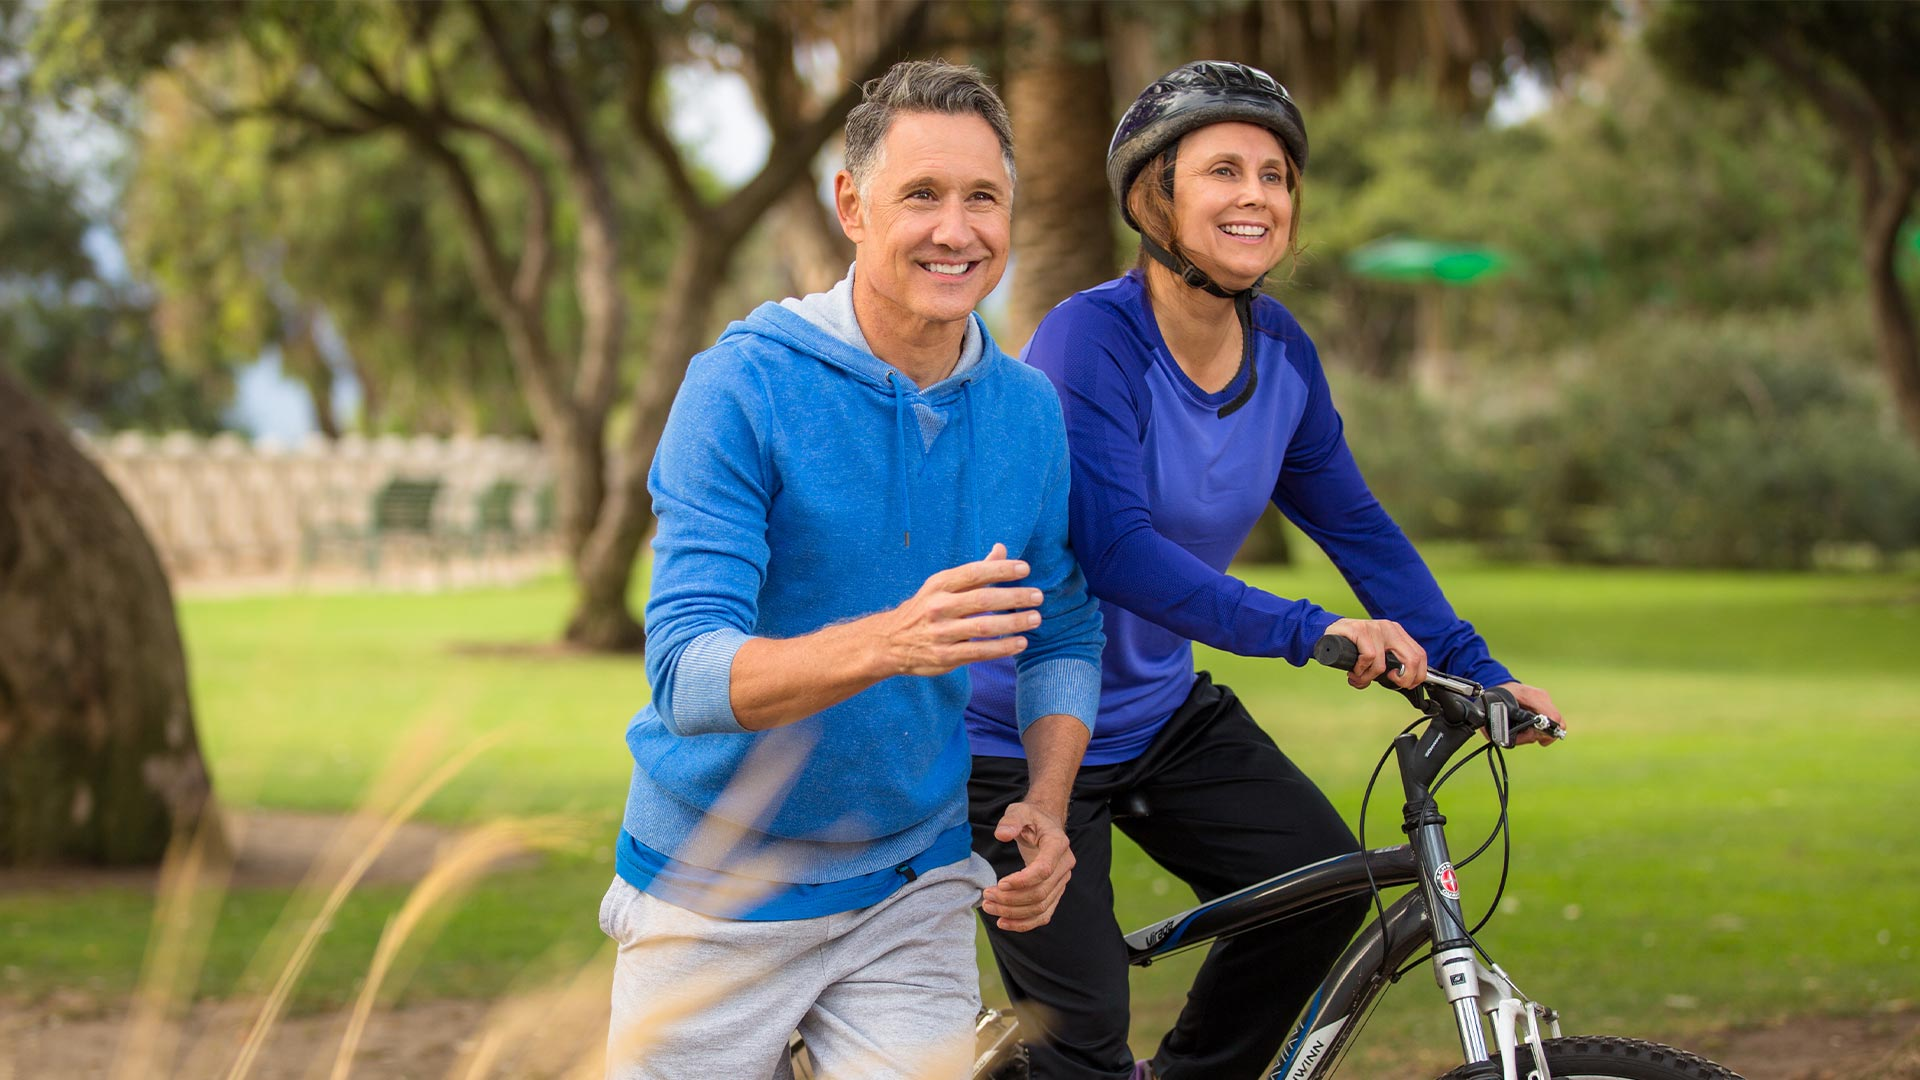 Couple in 50's in park, man with blue sweatshirt running & woman in blue shirt on her bike